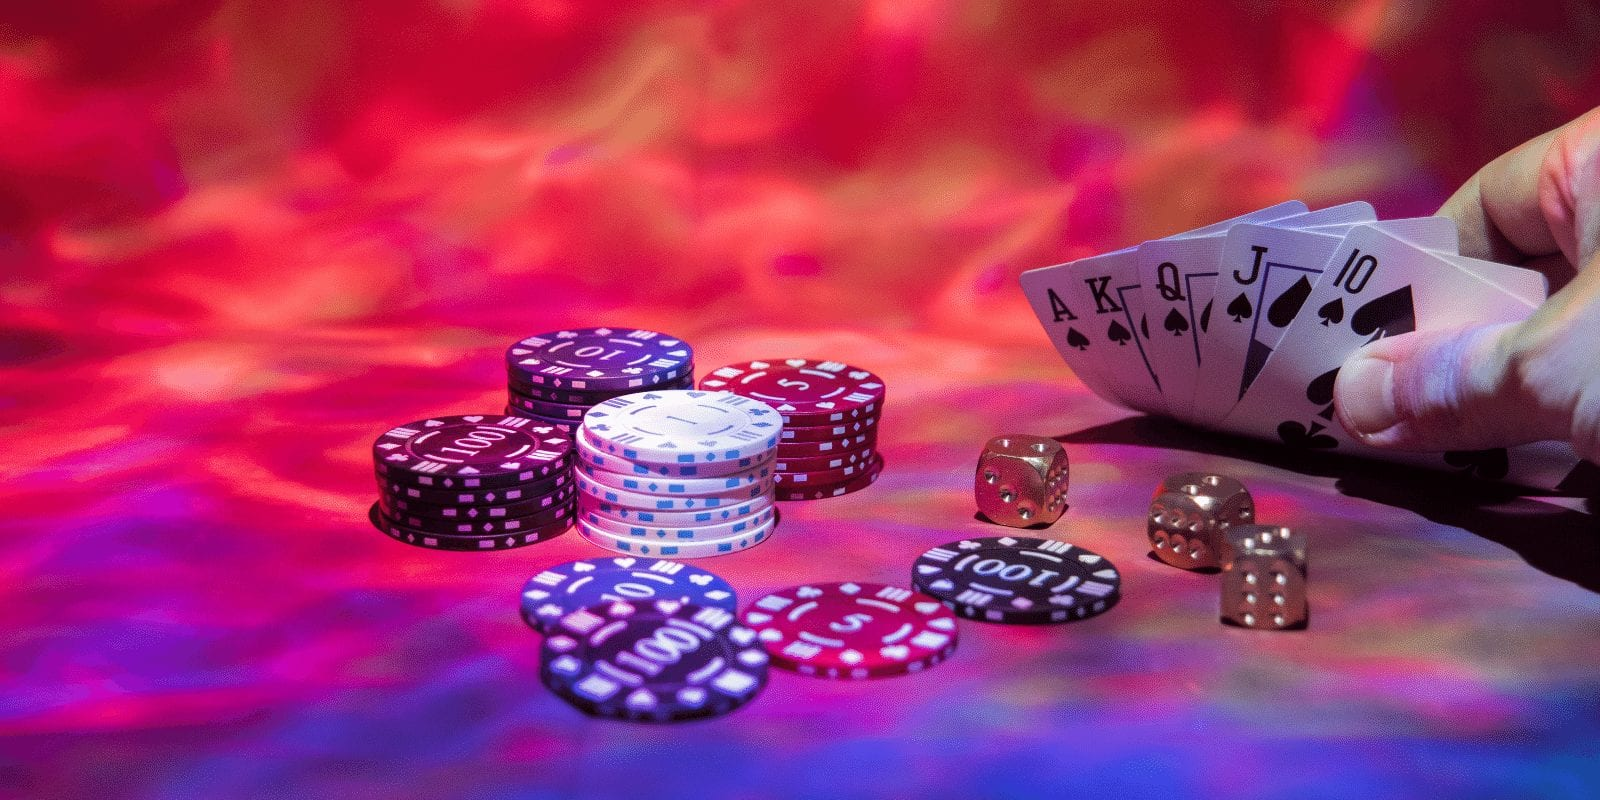 Why Online Casinos Became Popular During COVID-19